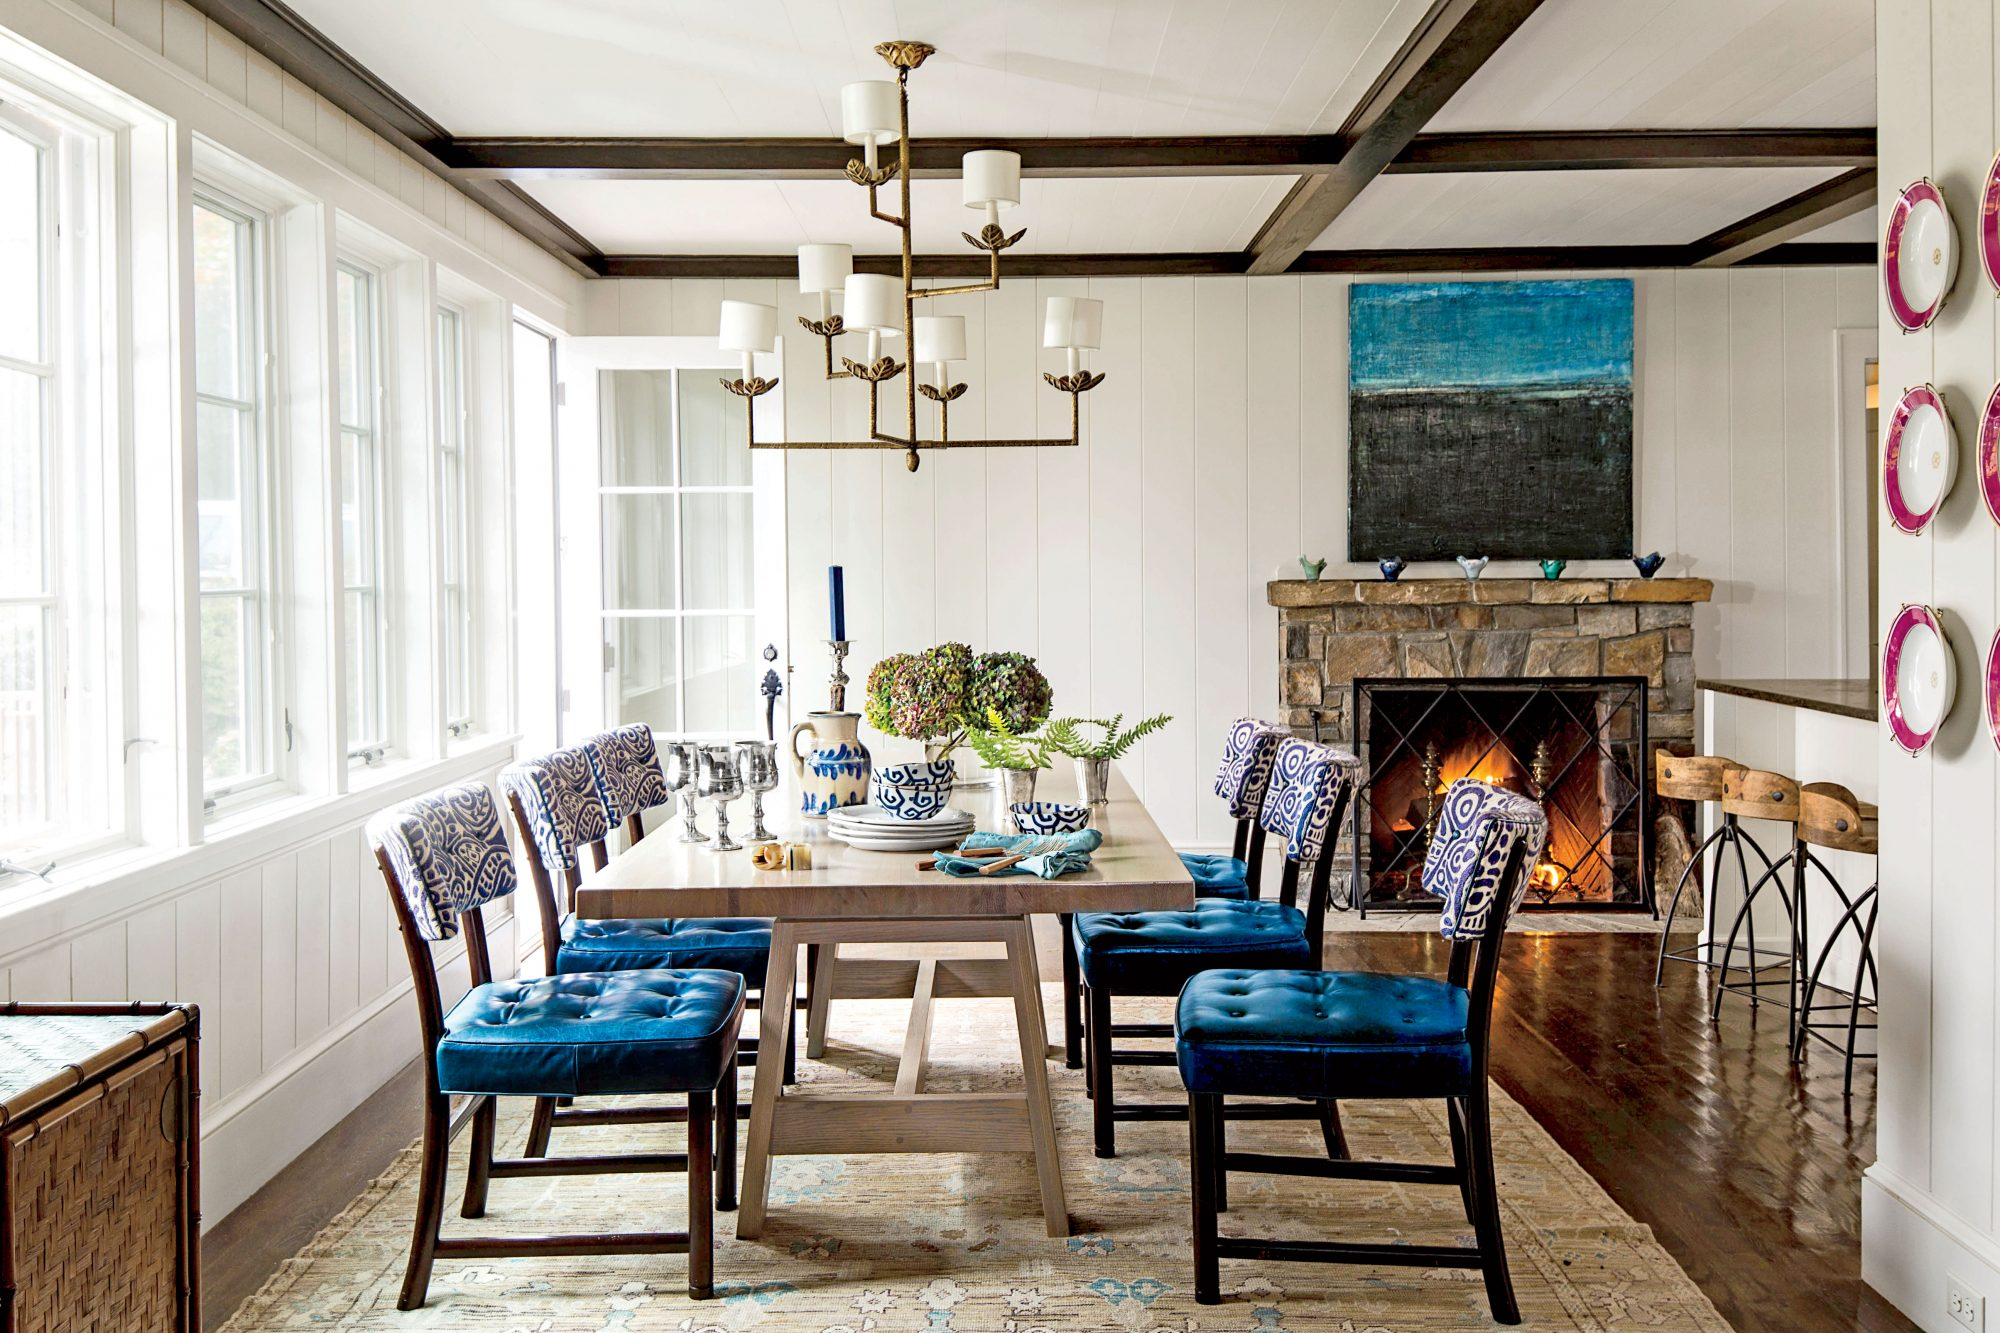 The Breakfast Room: Add a Pop of Pattern